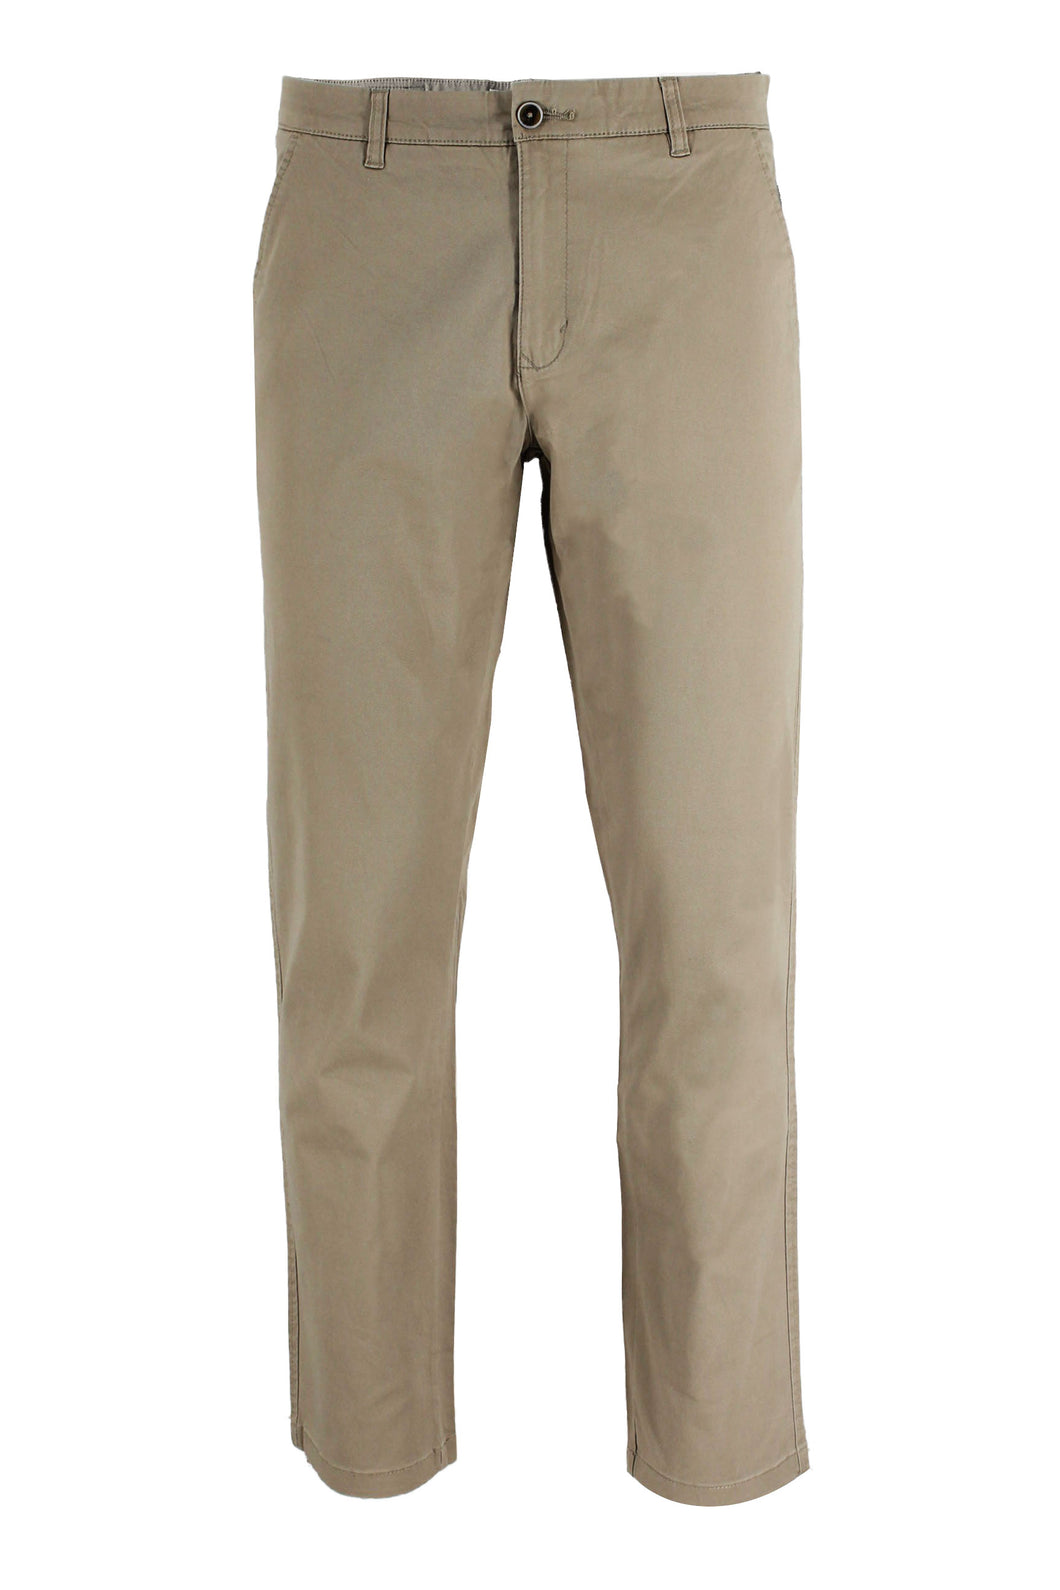 Khaki Ike By Ike Behar Stretch Cotton Chino Pants